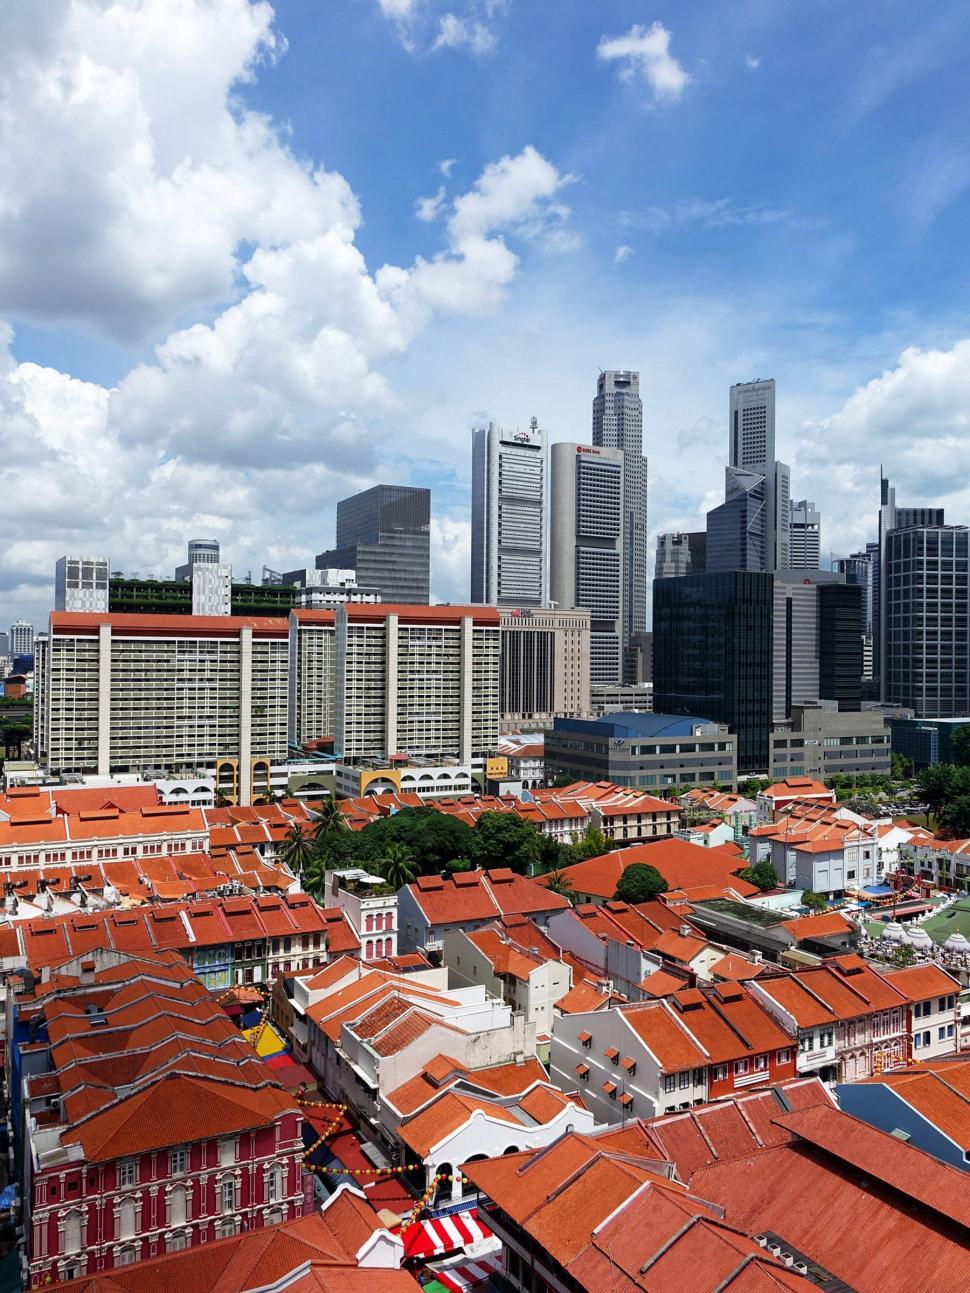 Download Free Stock HD Photo of Singapore City over rooftops Online